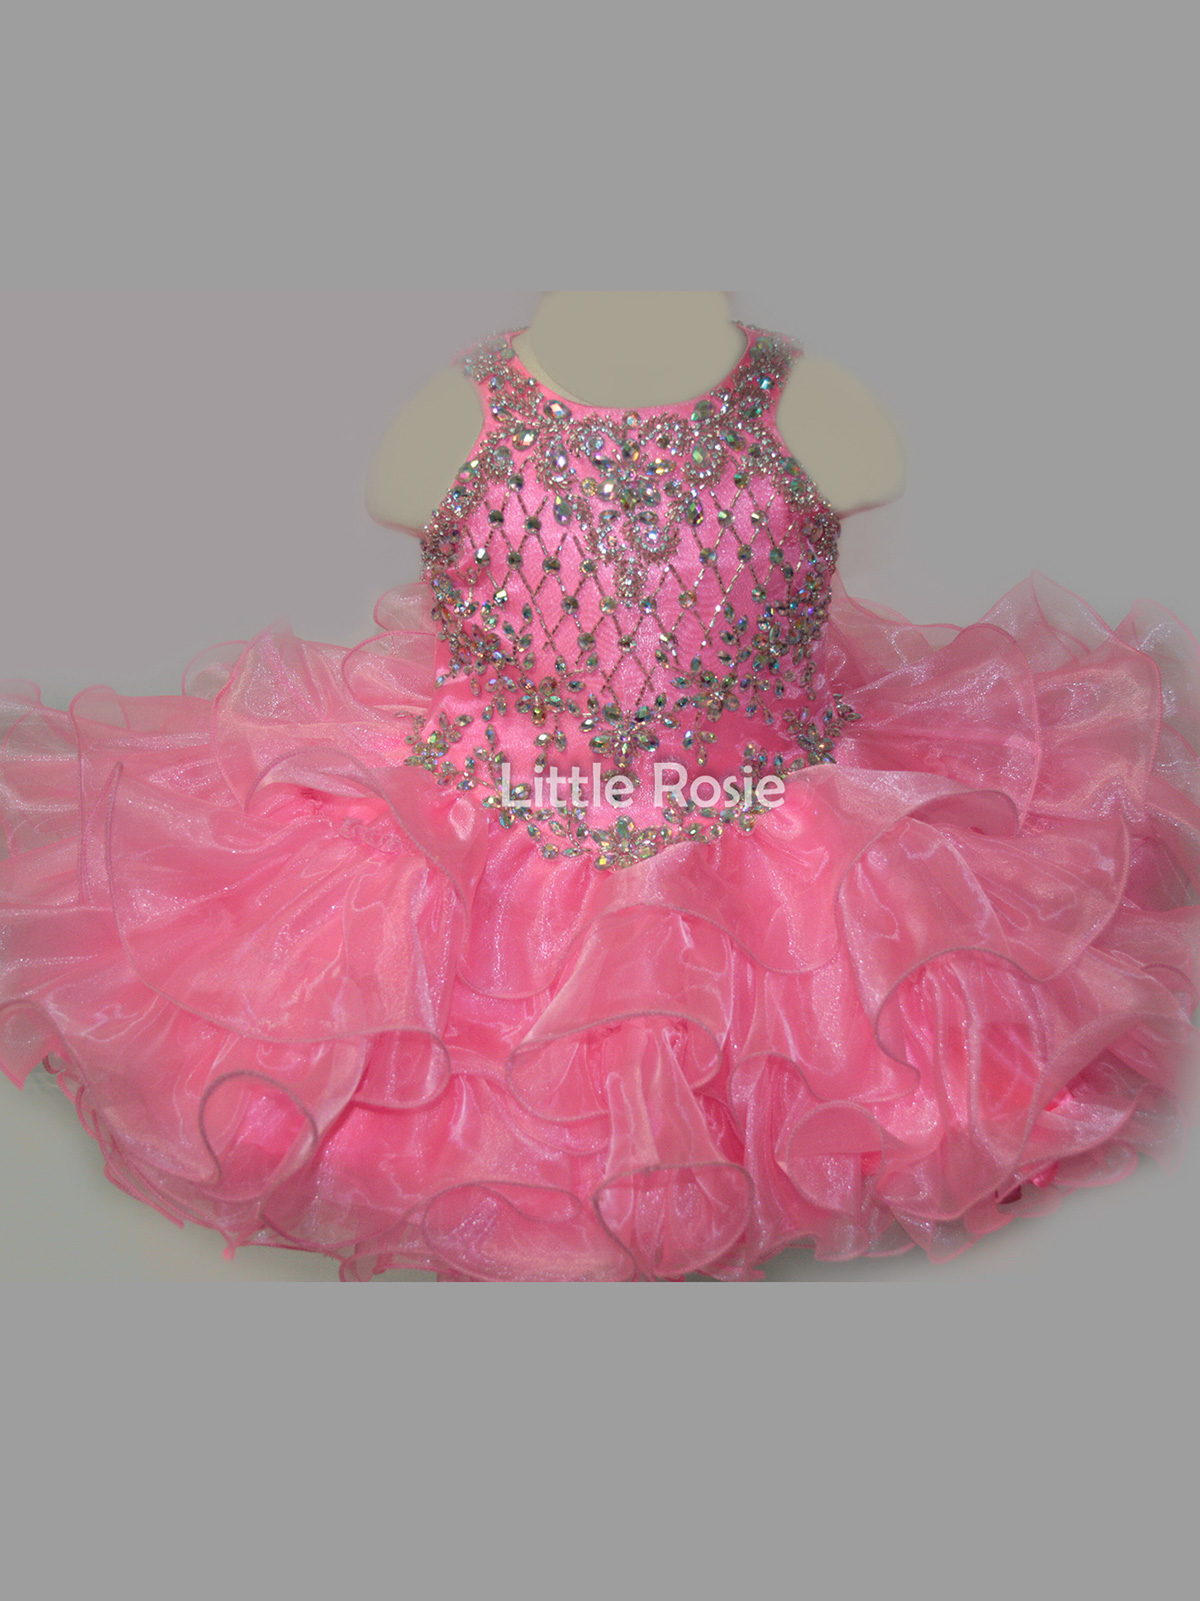 Little Rosie Baby Pageant Dresses - PageantDesigns.com